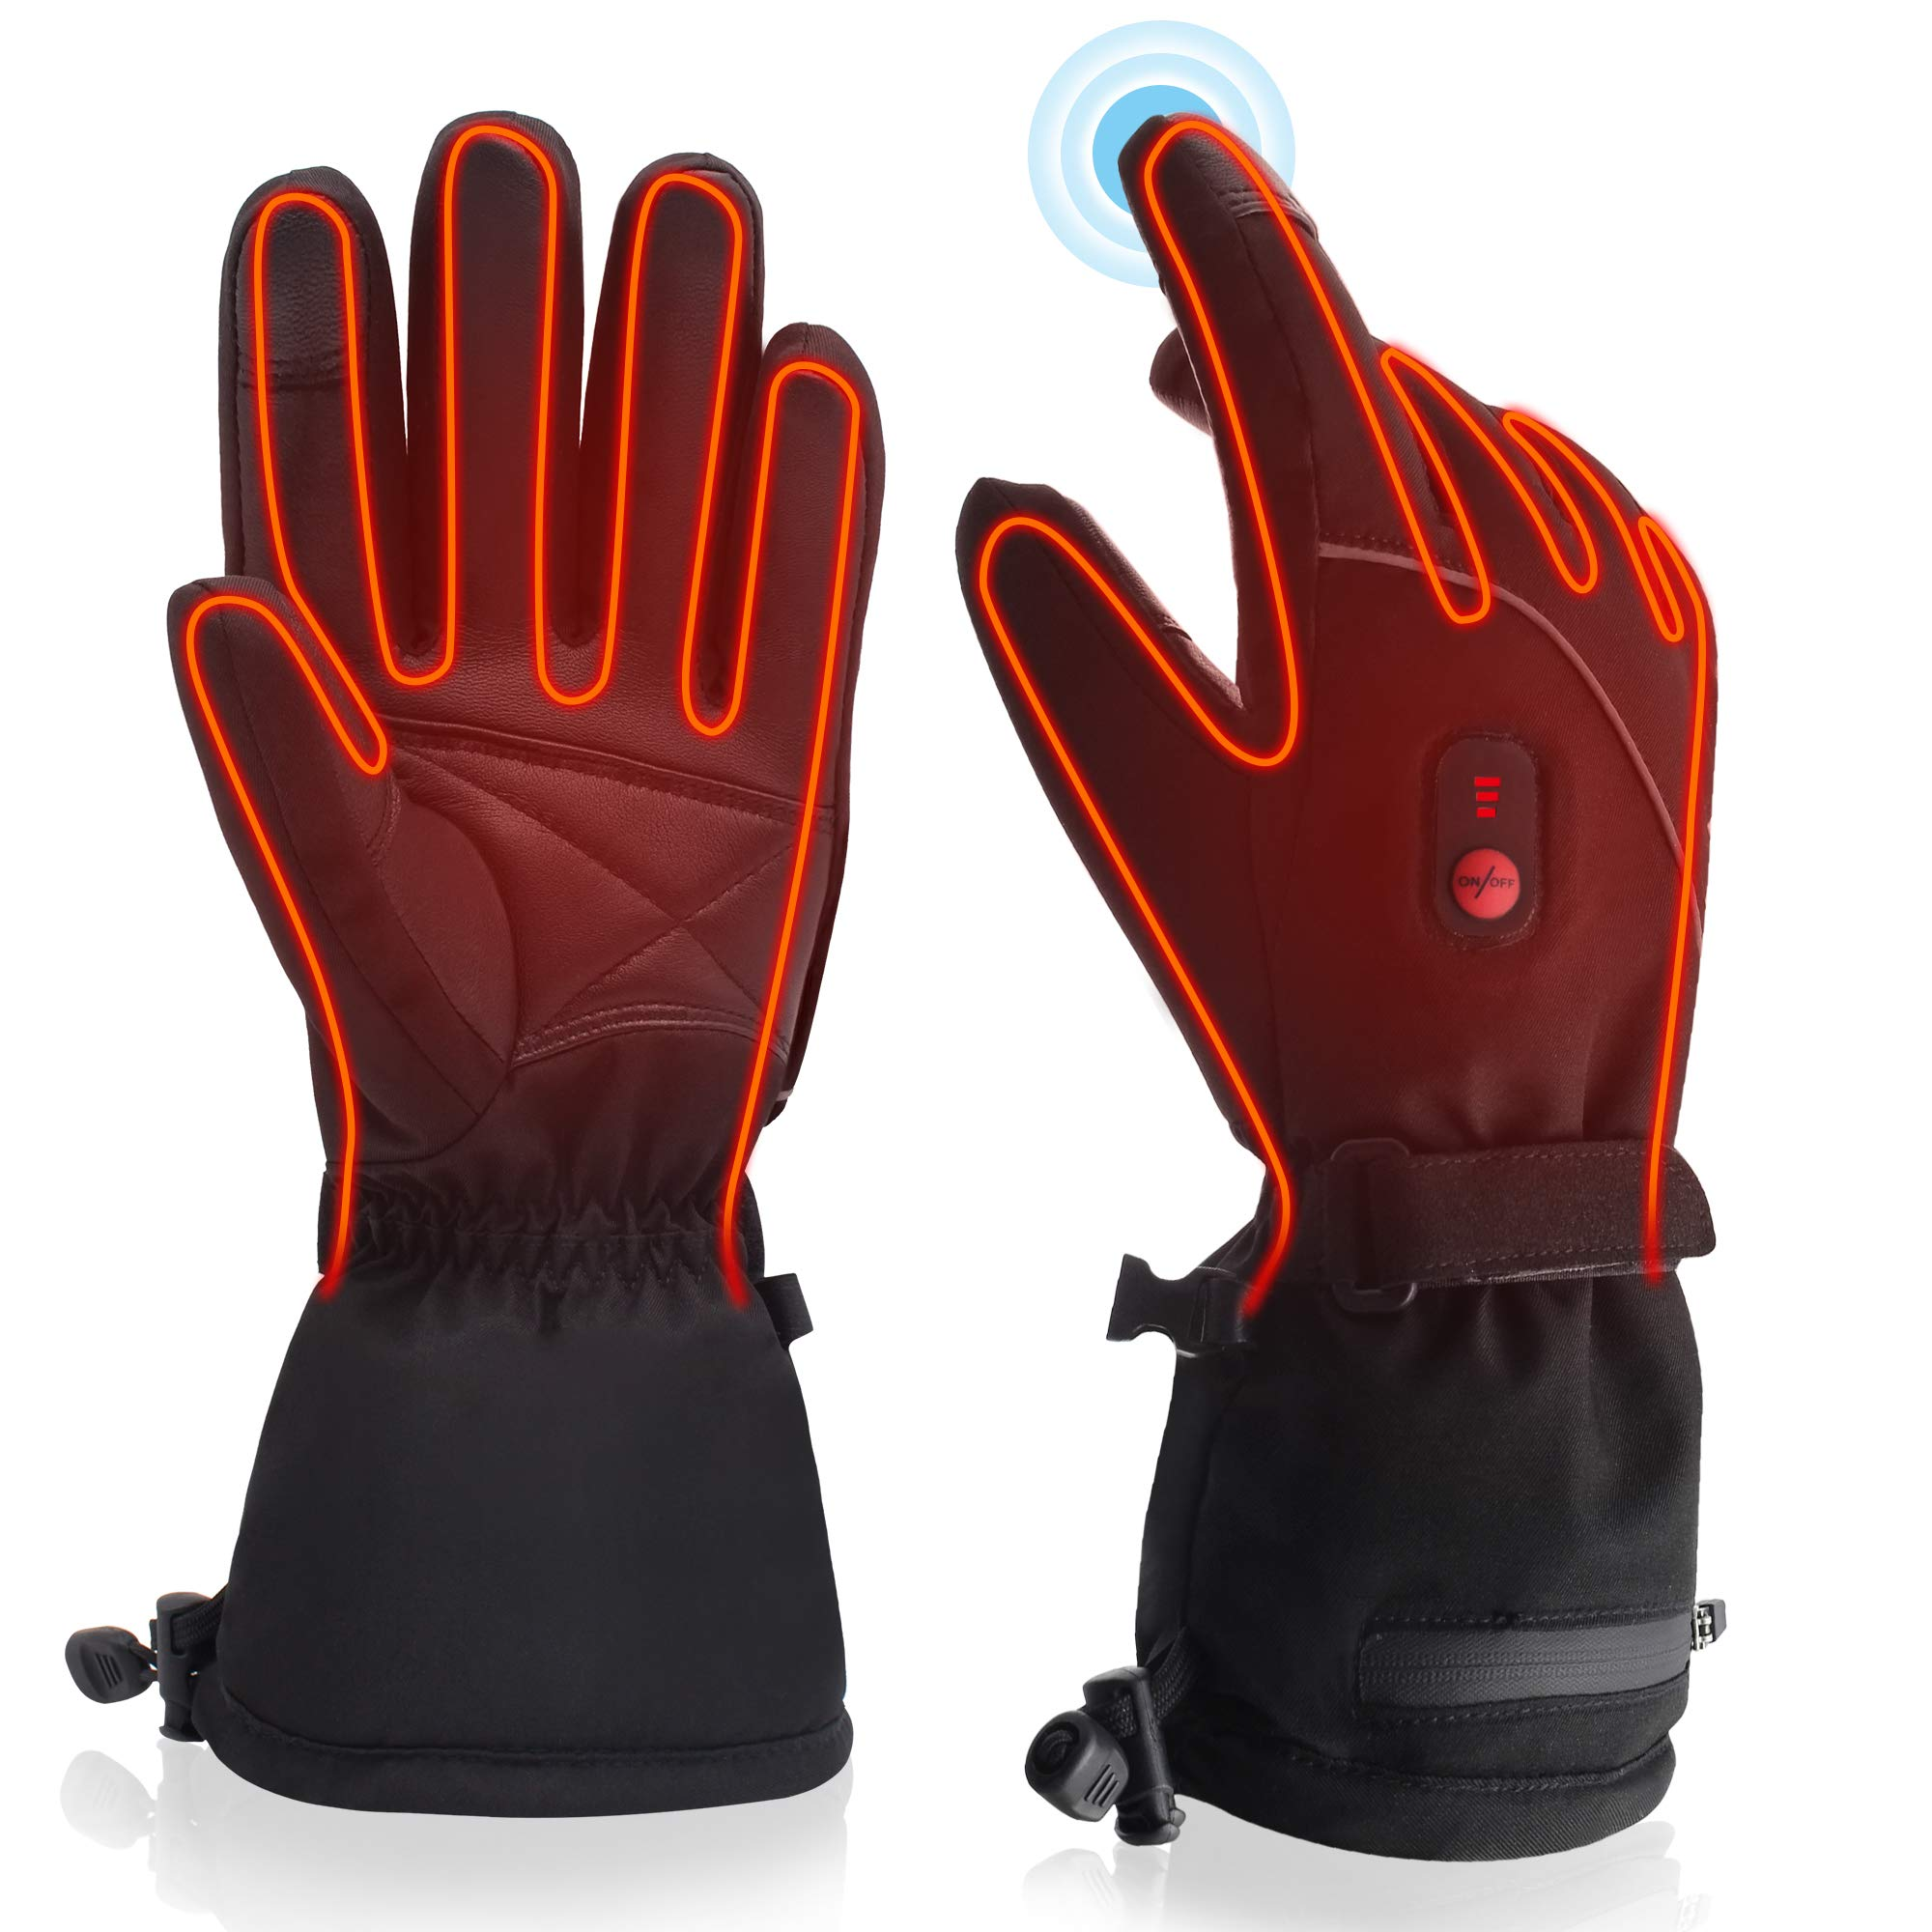 QILOVE Winter Warm Electric Heated Gloves Rechargeable Battery Powered Men Women Snow Gloves Cold Weather Gloves Liners Hunting Skiing Waterproof Touch-Screen (Upgraded Heated Gloves-L)